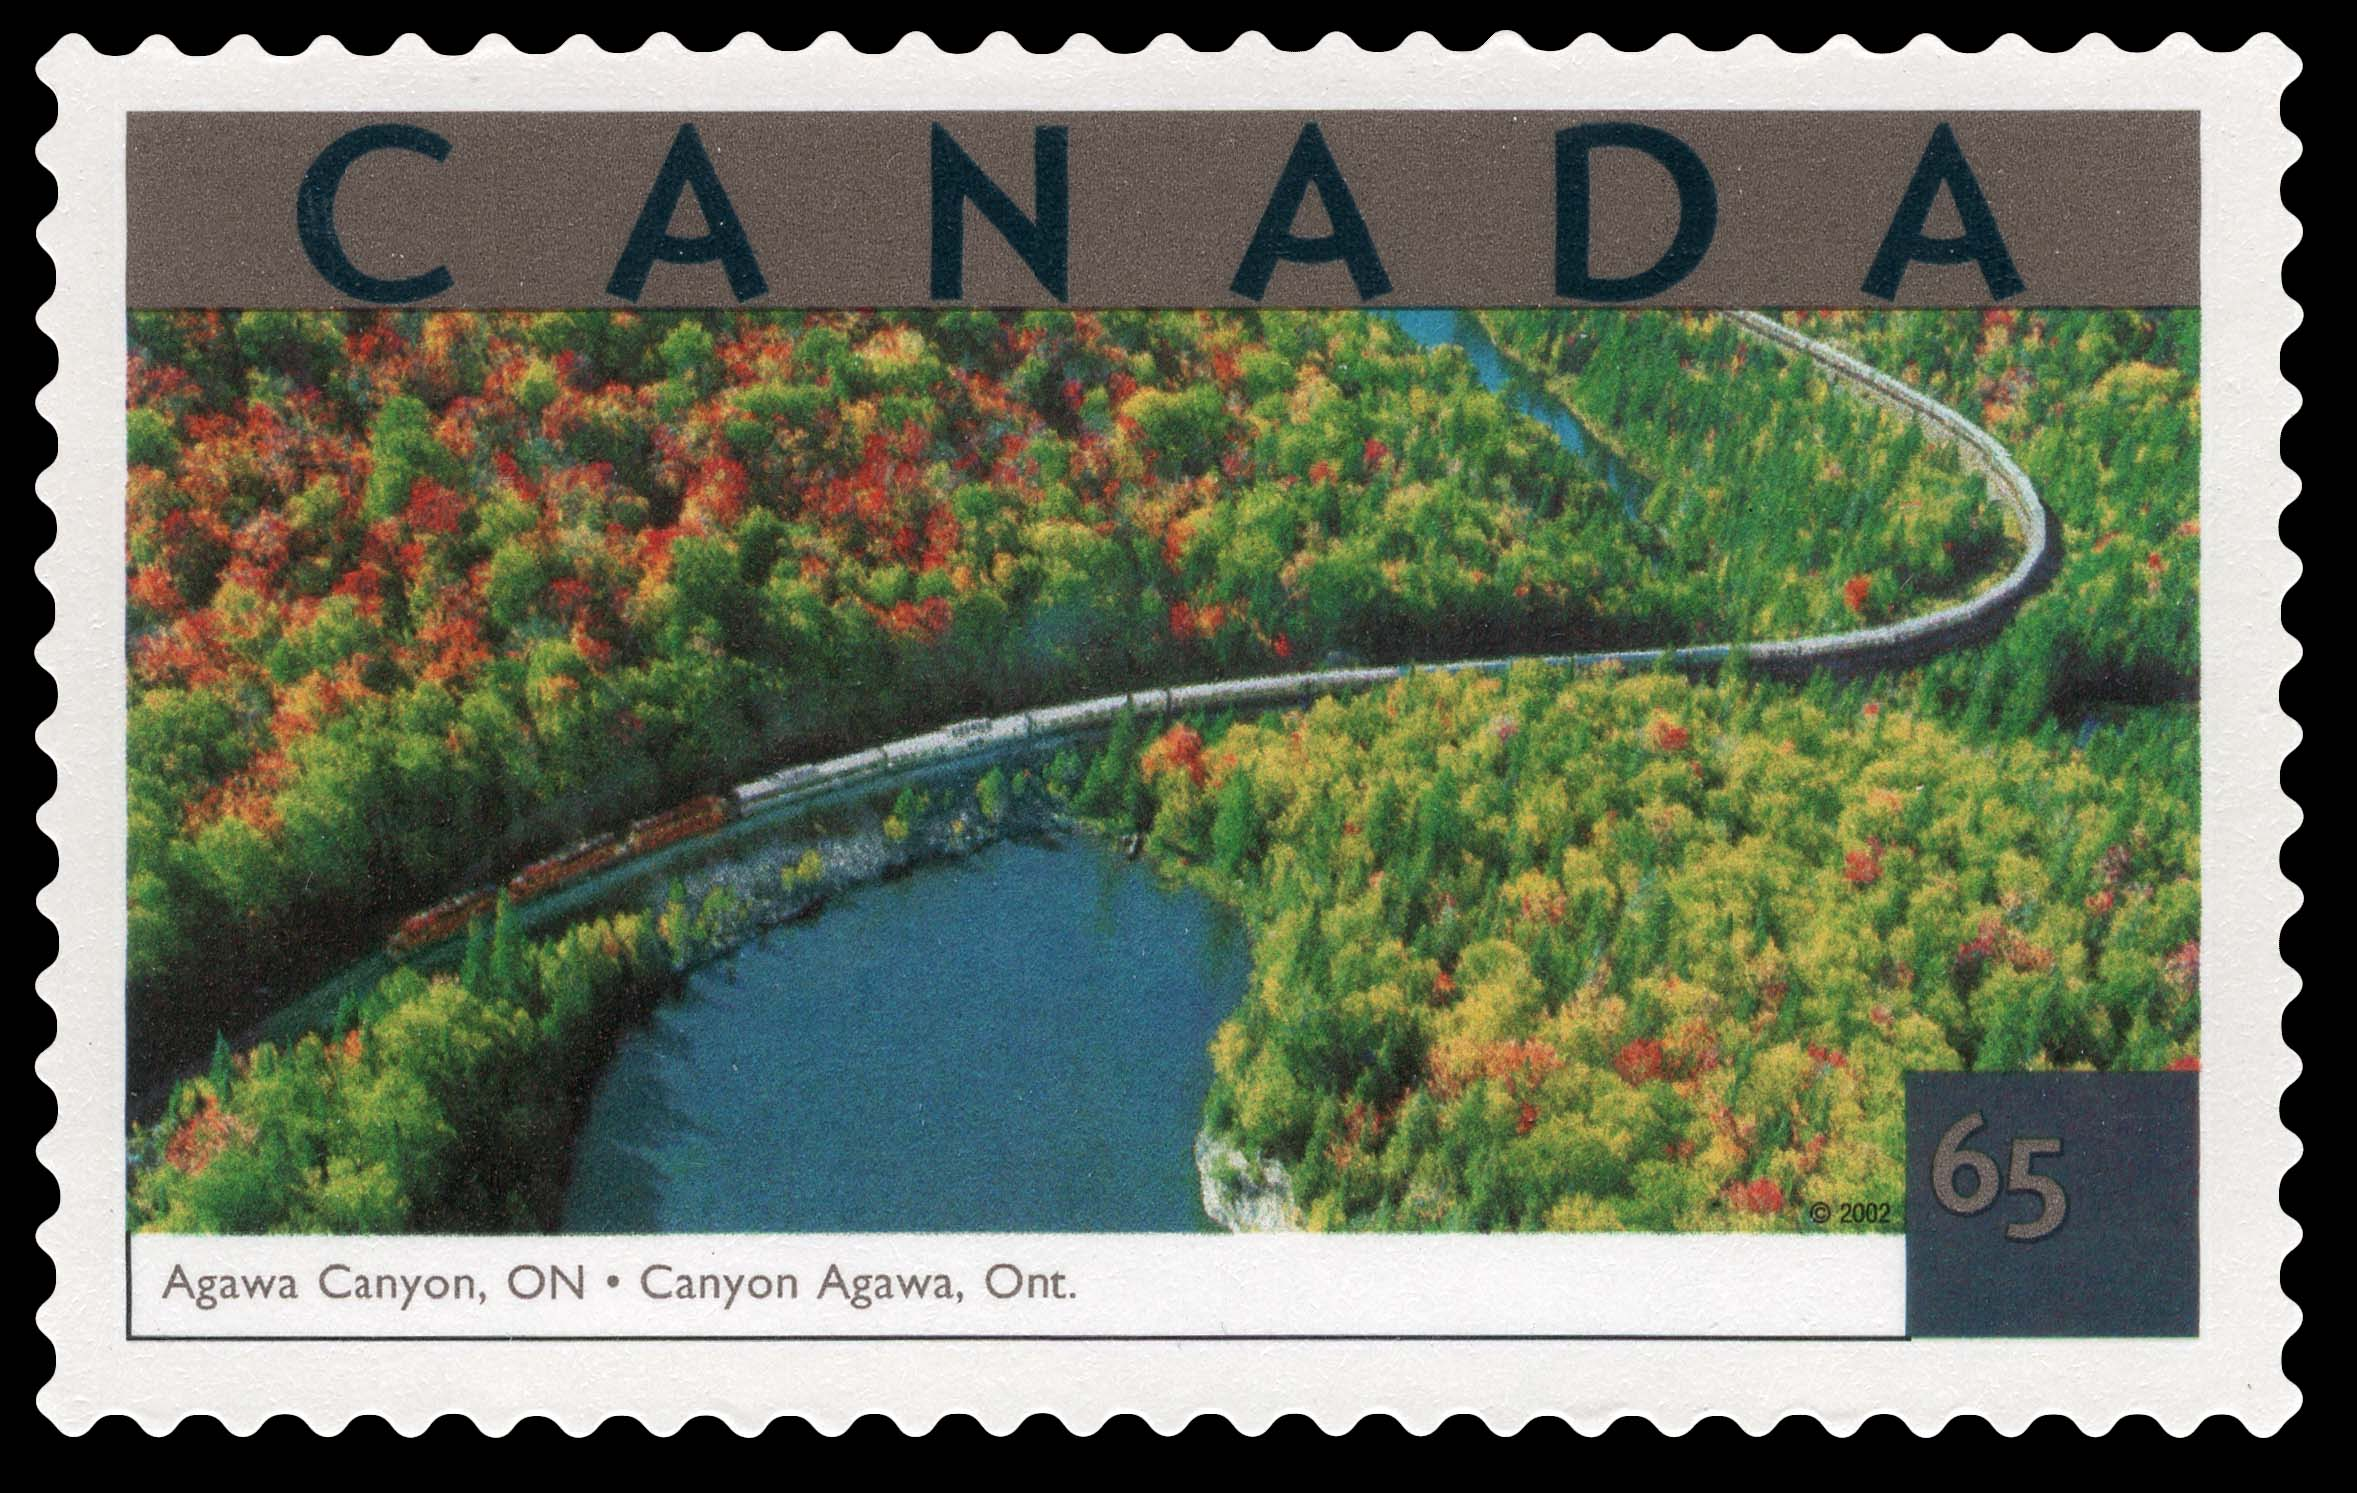 Agawa Canyon, Ontario Canada Postage Stamp | Tourist Attractions